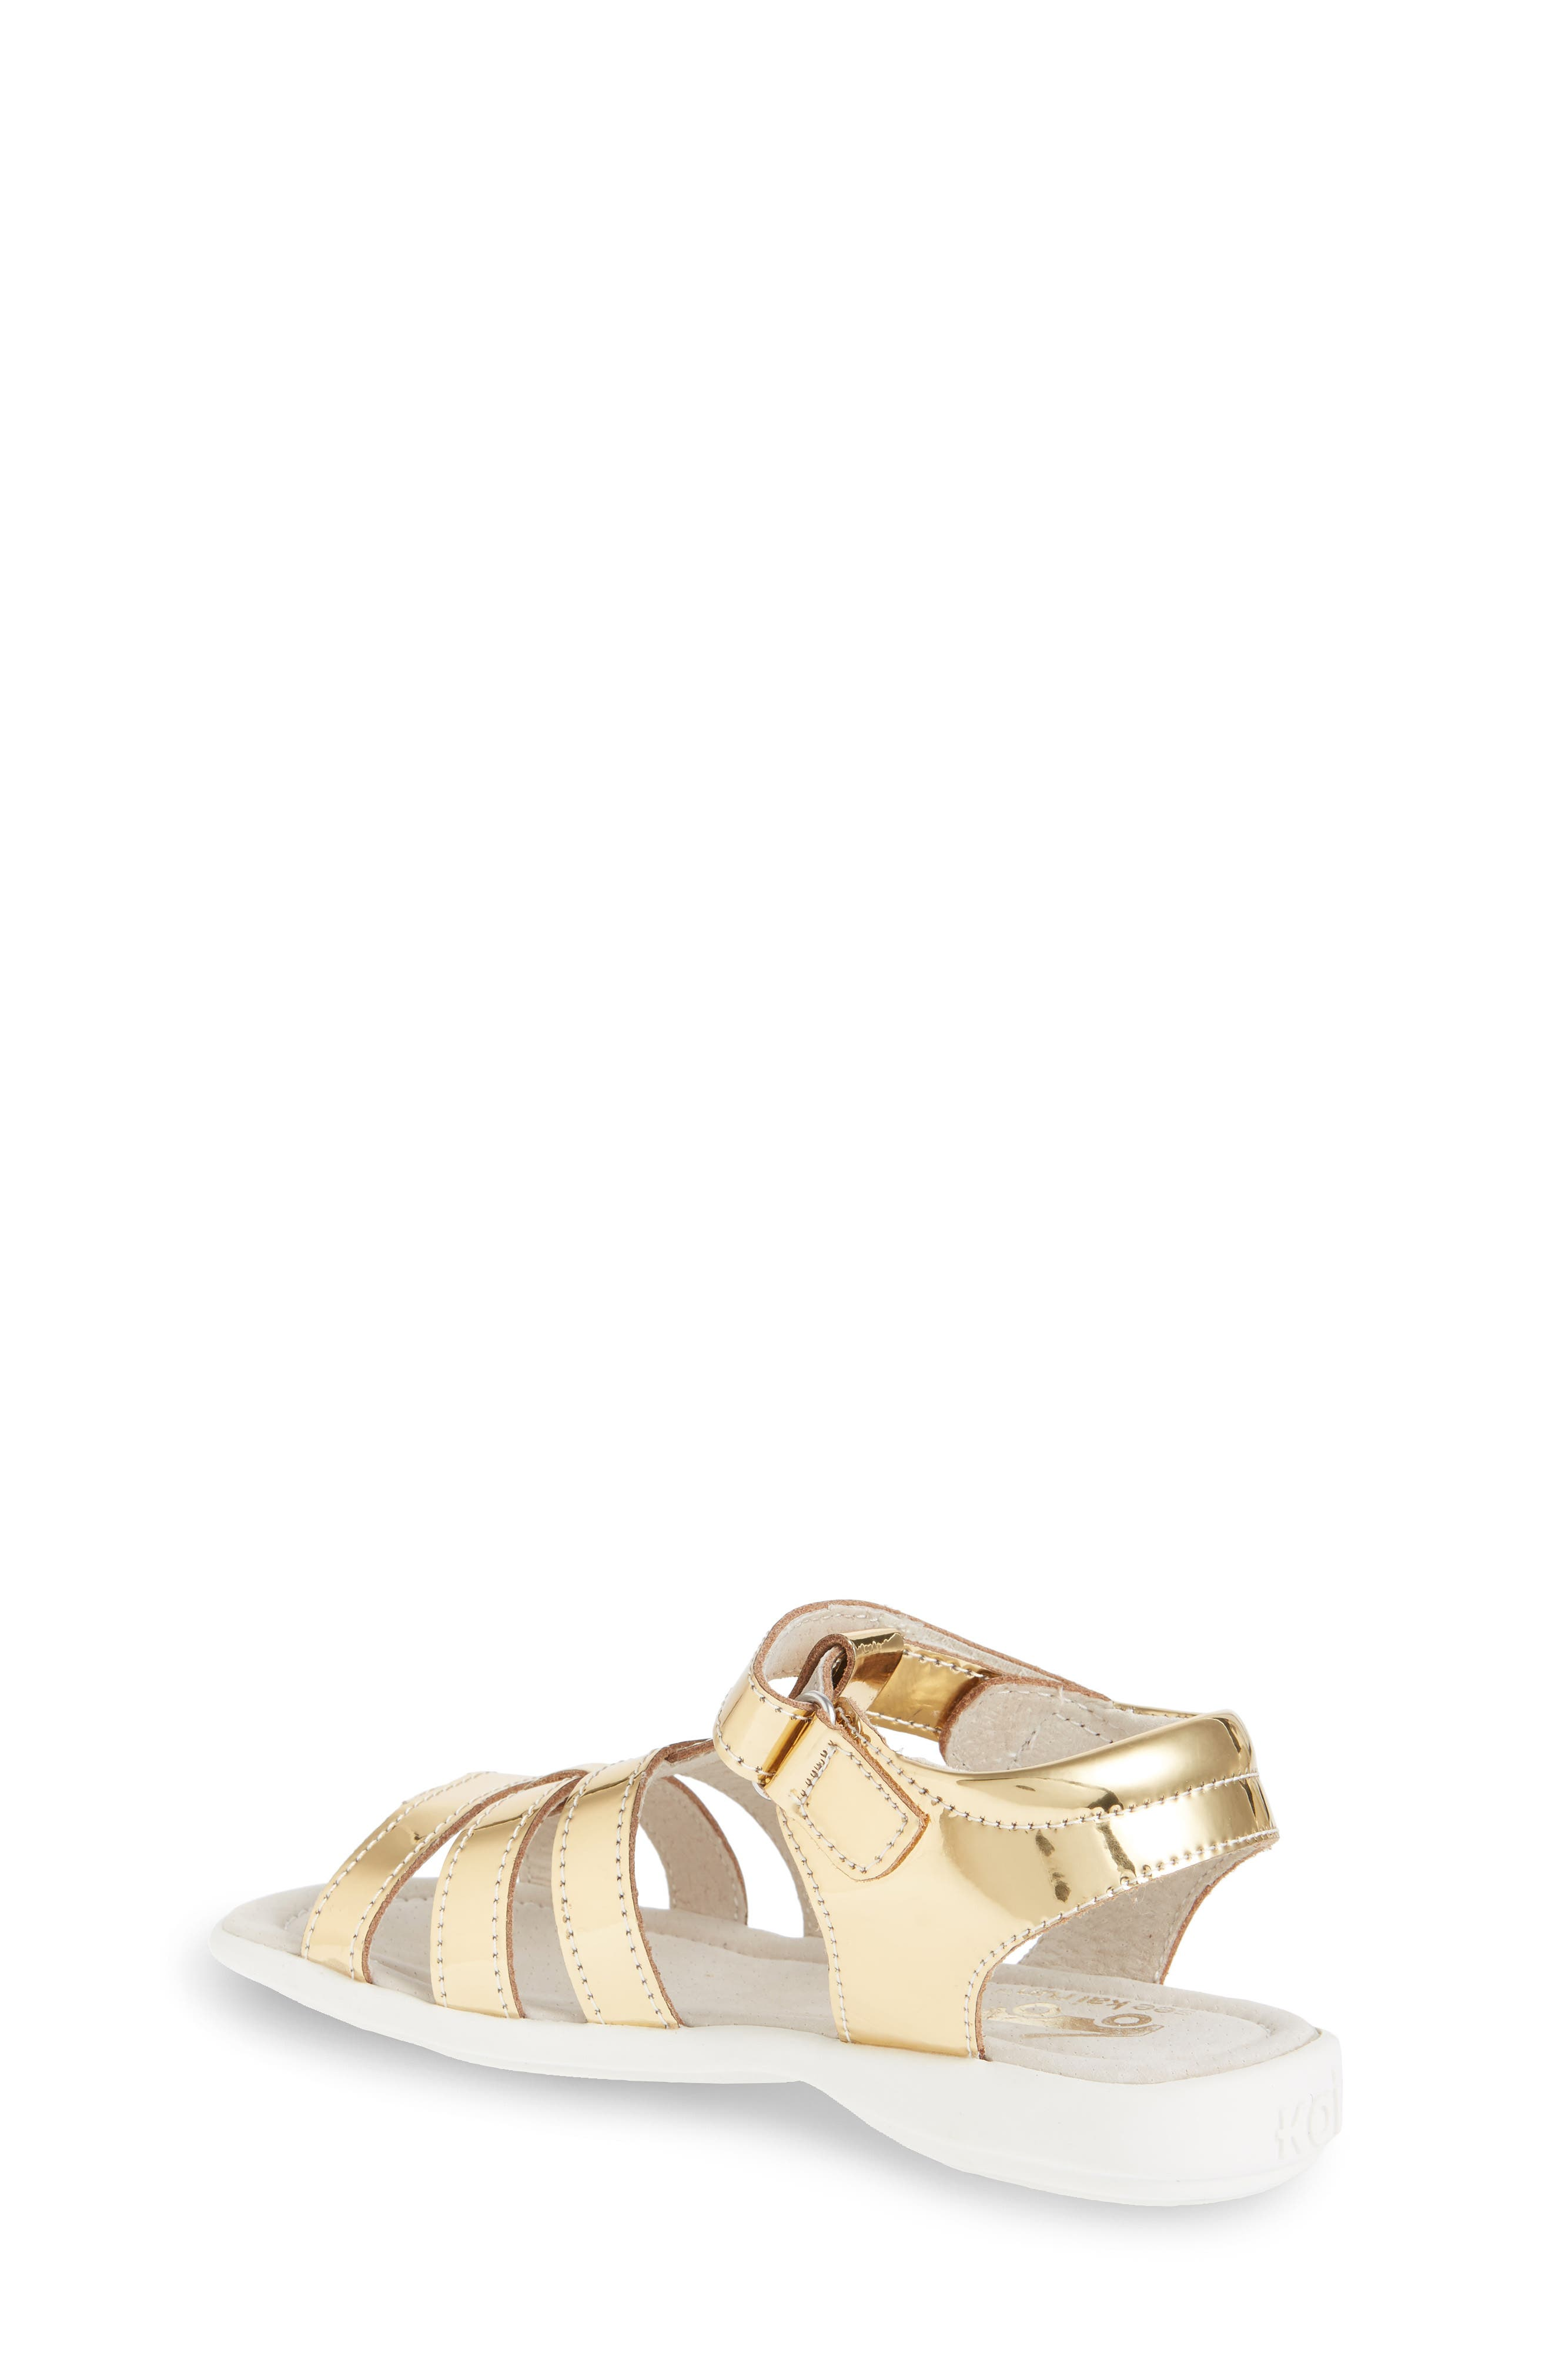 Fe Metallic Fisherman Sandal,                             Alternate thumbnail 2, color,                             Gold